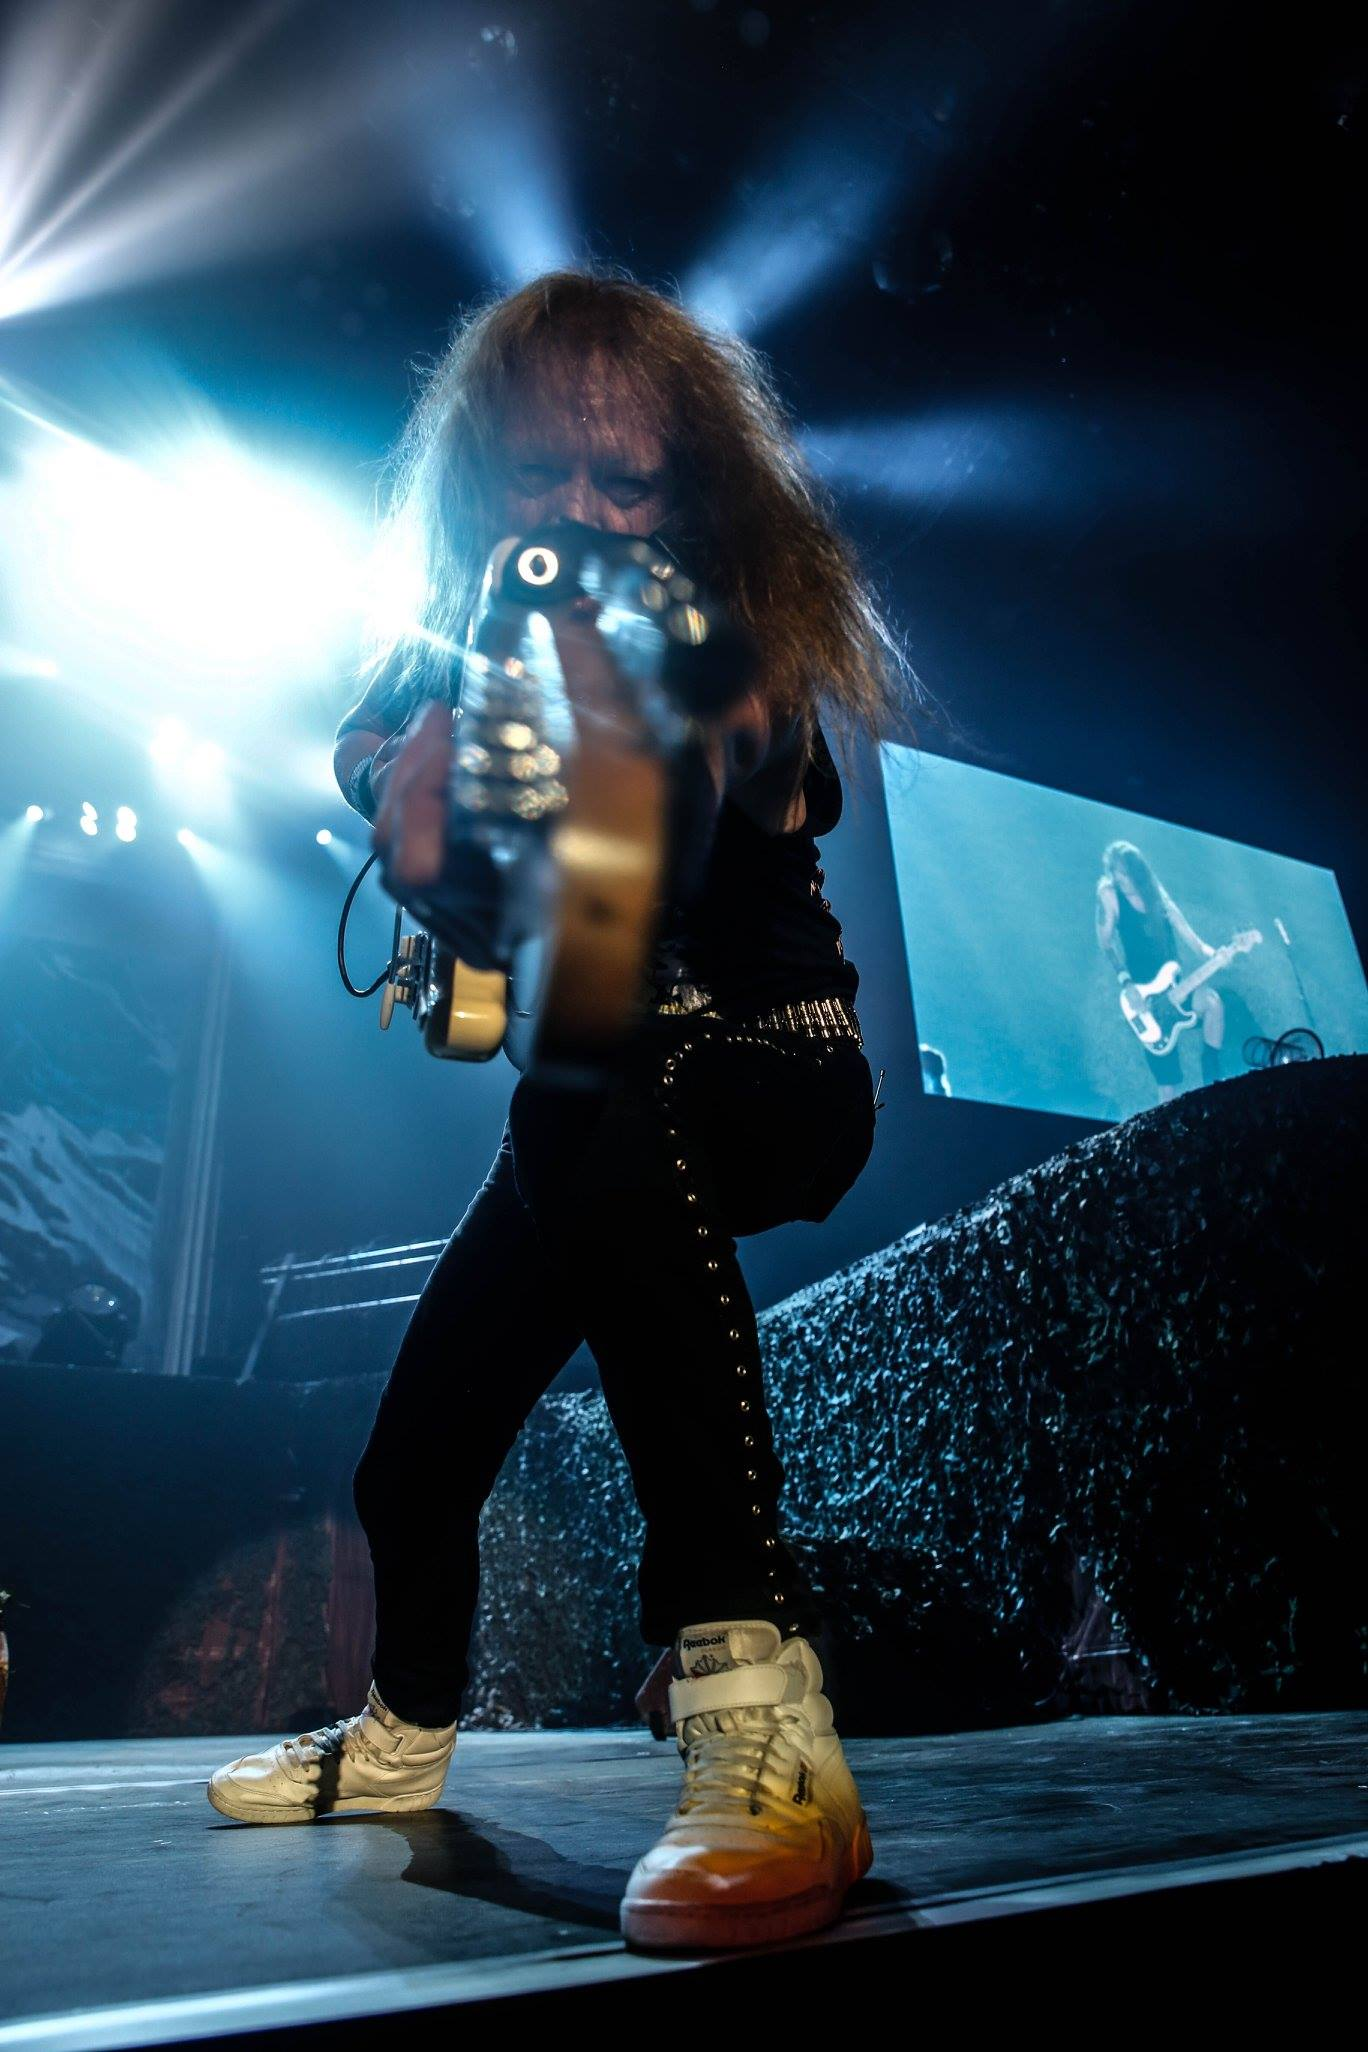 All content © Metal Planet Music. No content of this article or photographs to be reproduced in part or in whole without express written permission.